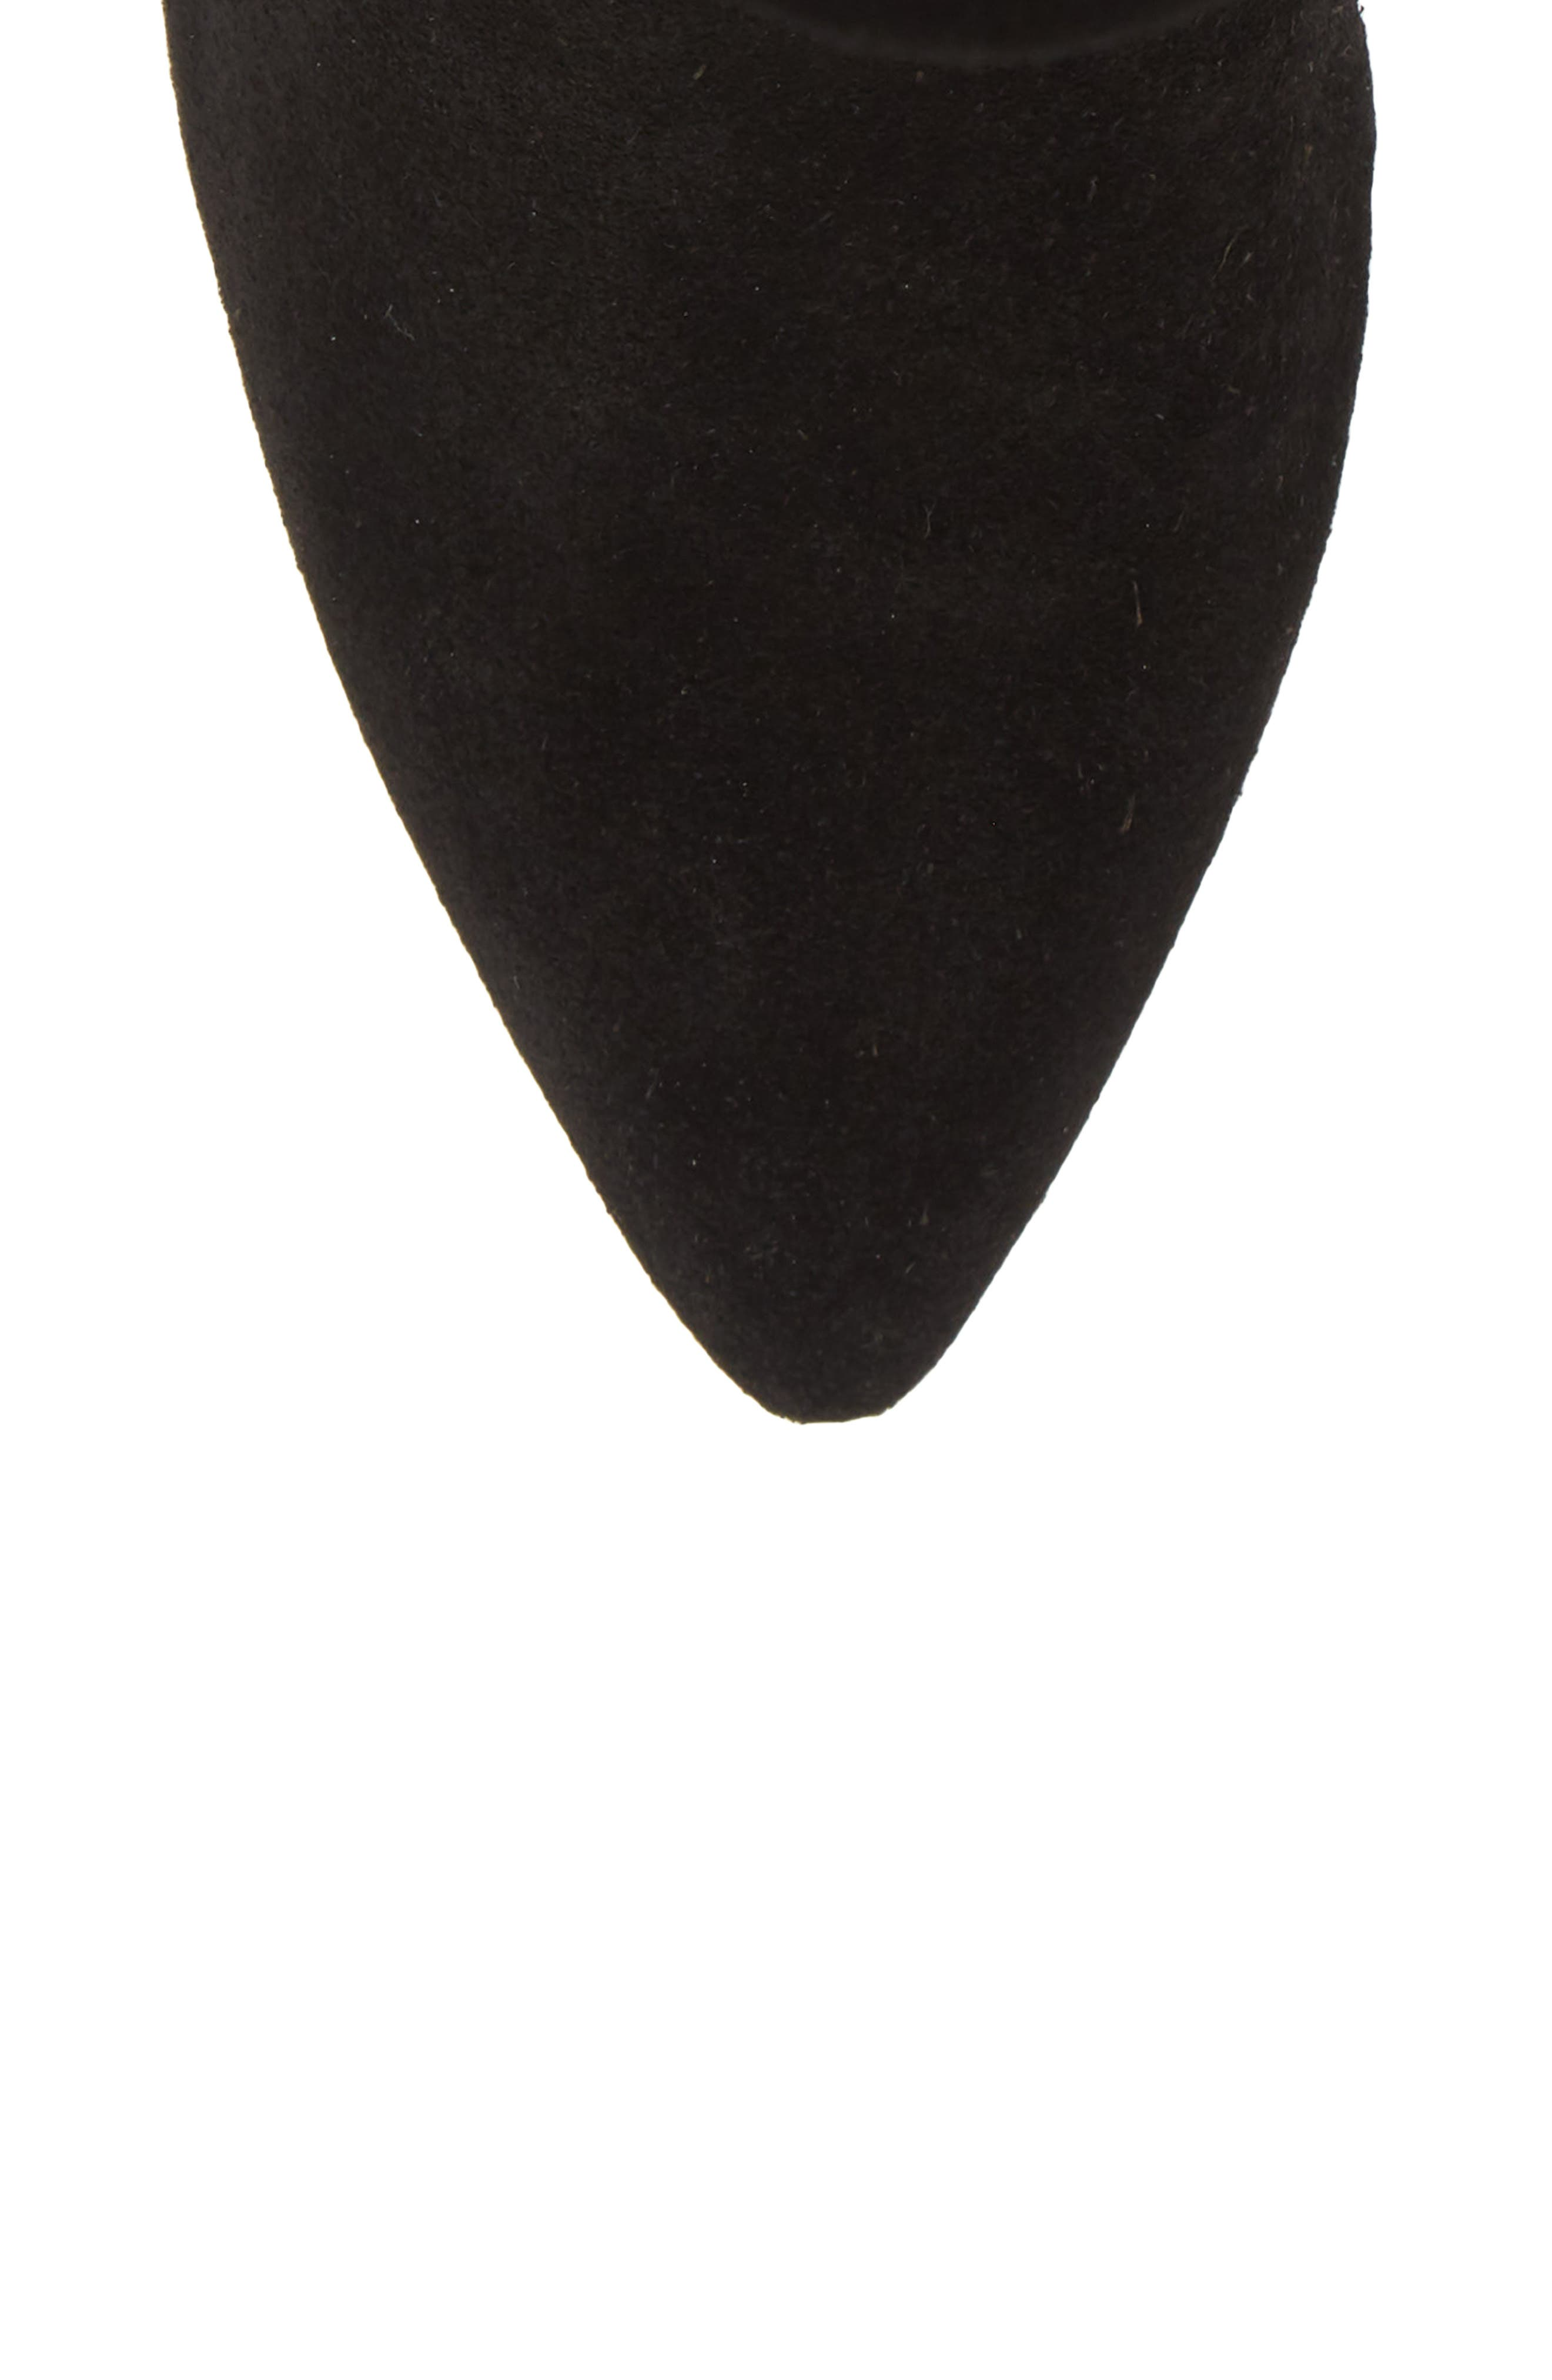 Natthan Slouchy Bootie,                             Alternate thumbnail 5, color,                             BLACK SUEDE